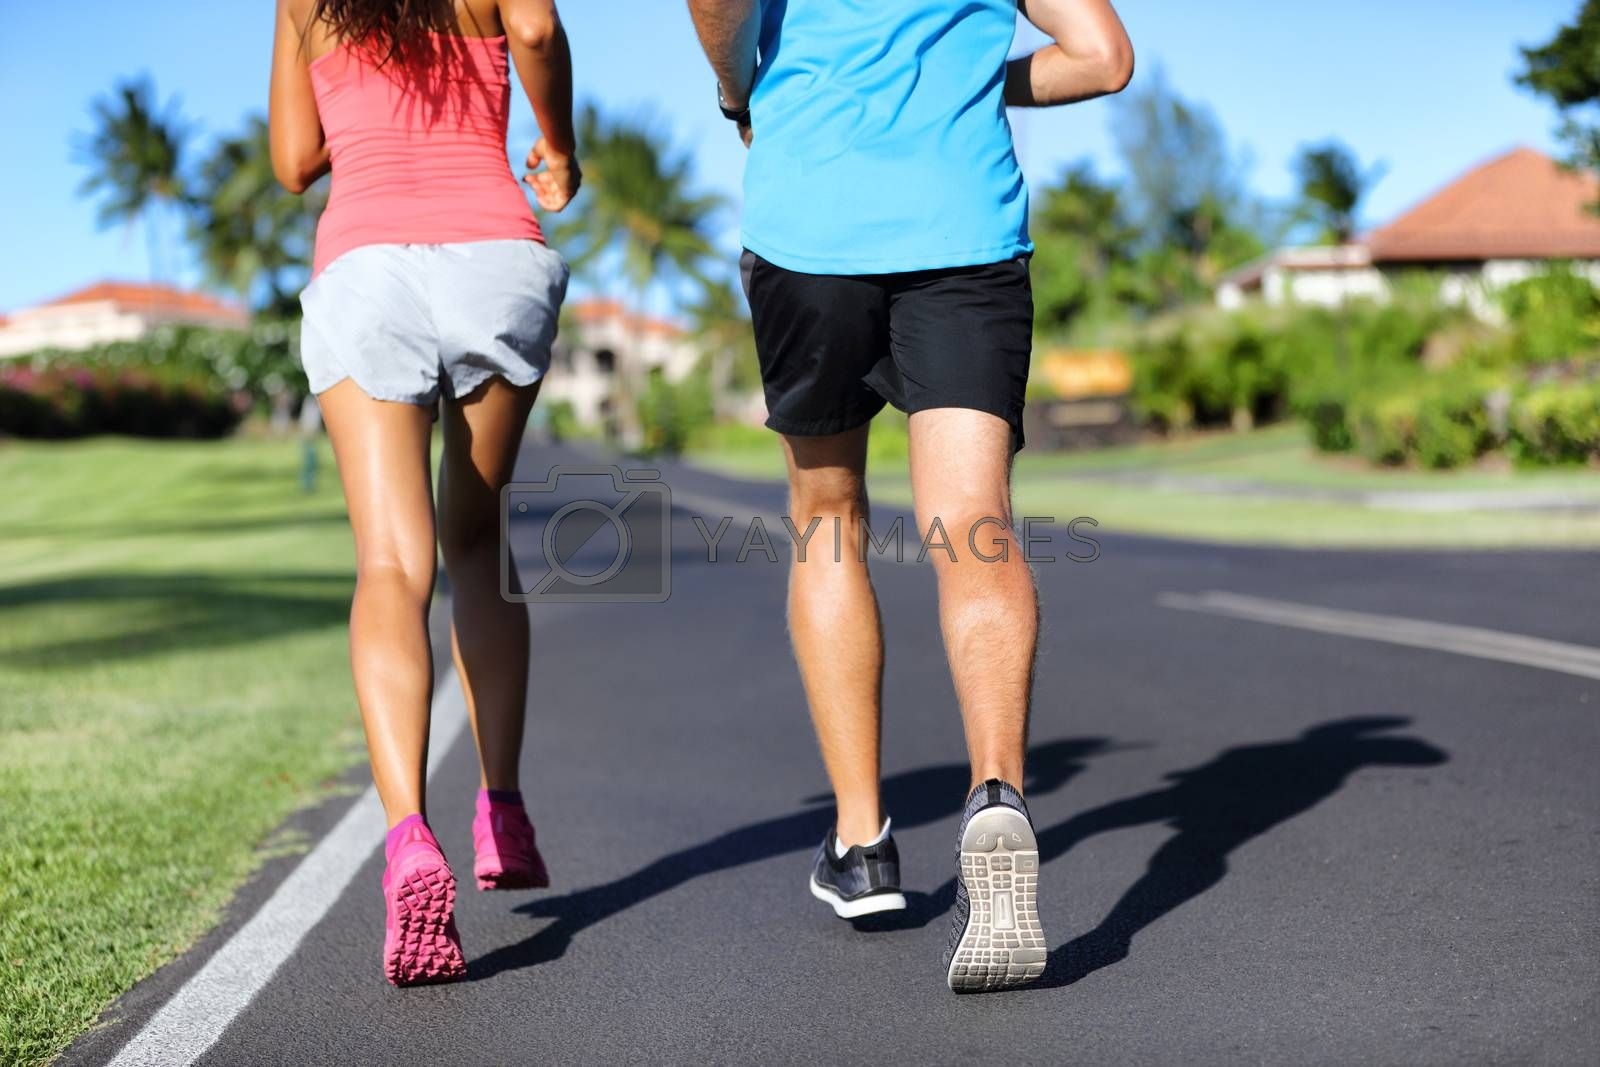 Runners running on road - closeup of legs of athletes sprinting training cardio together by Maridav